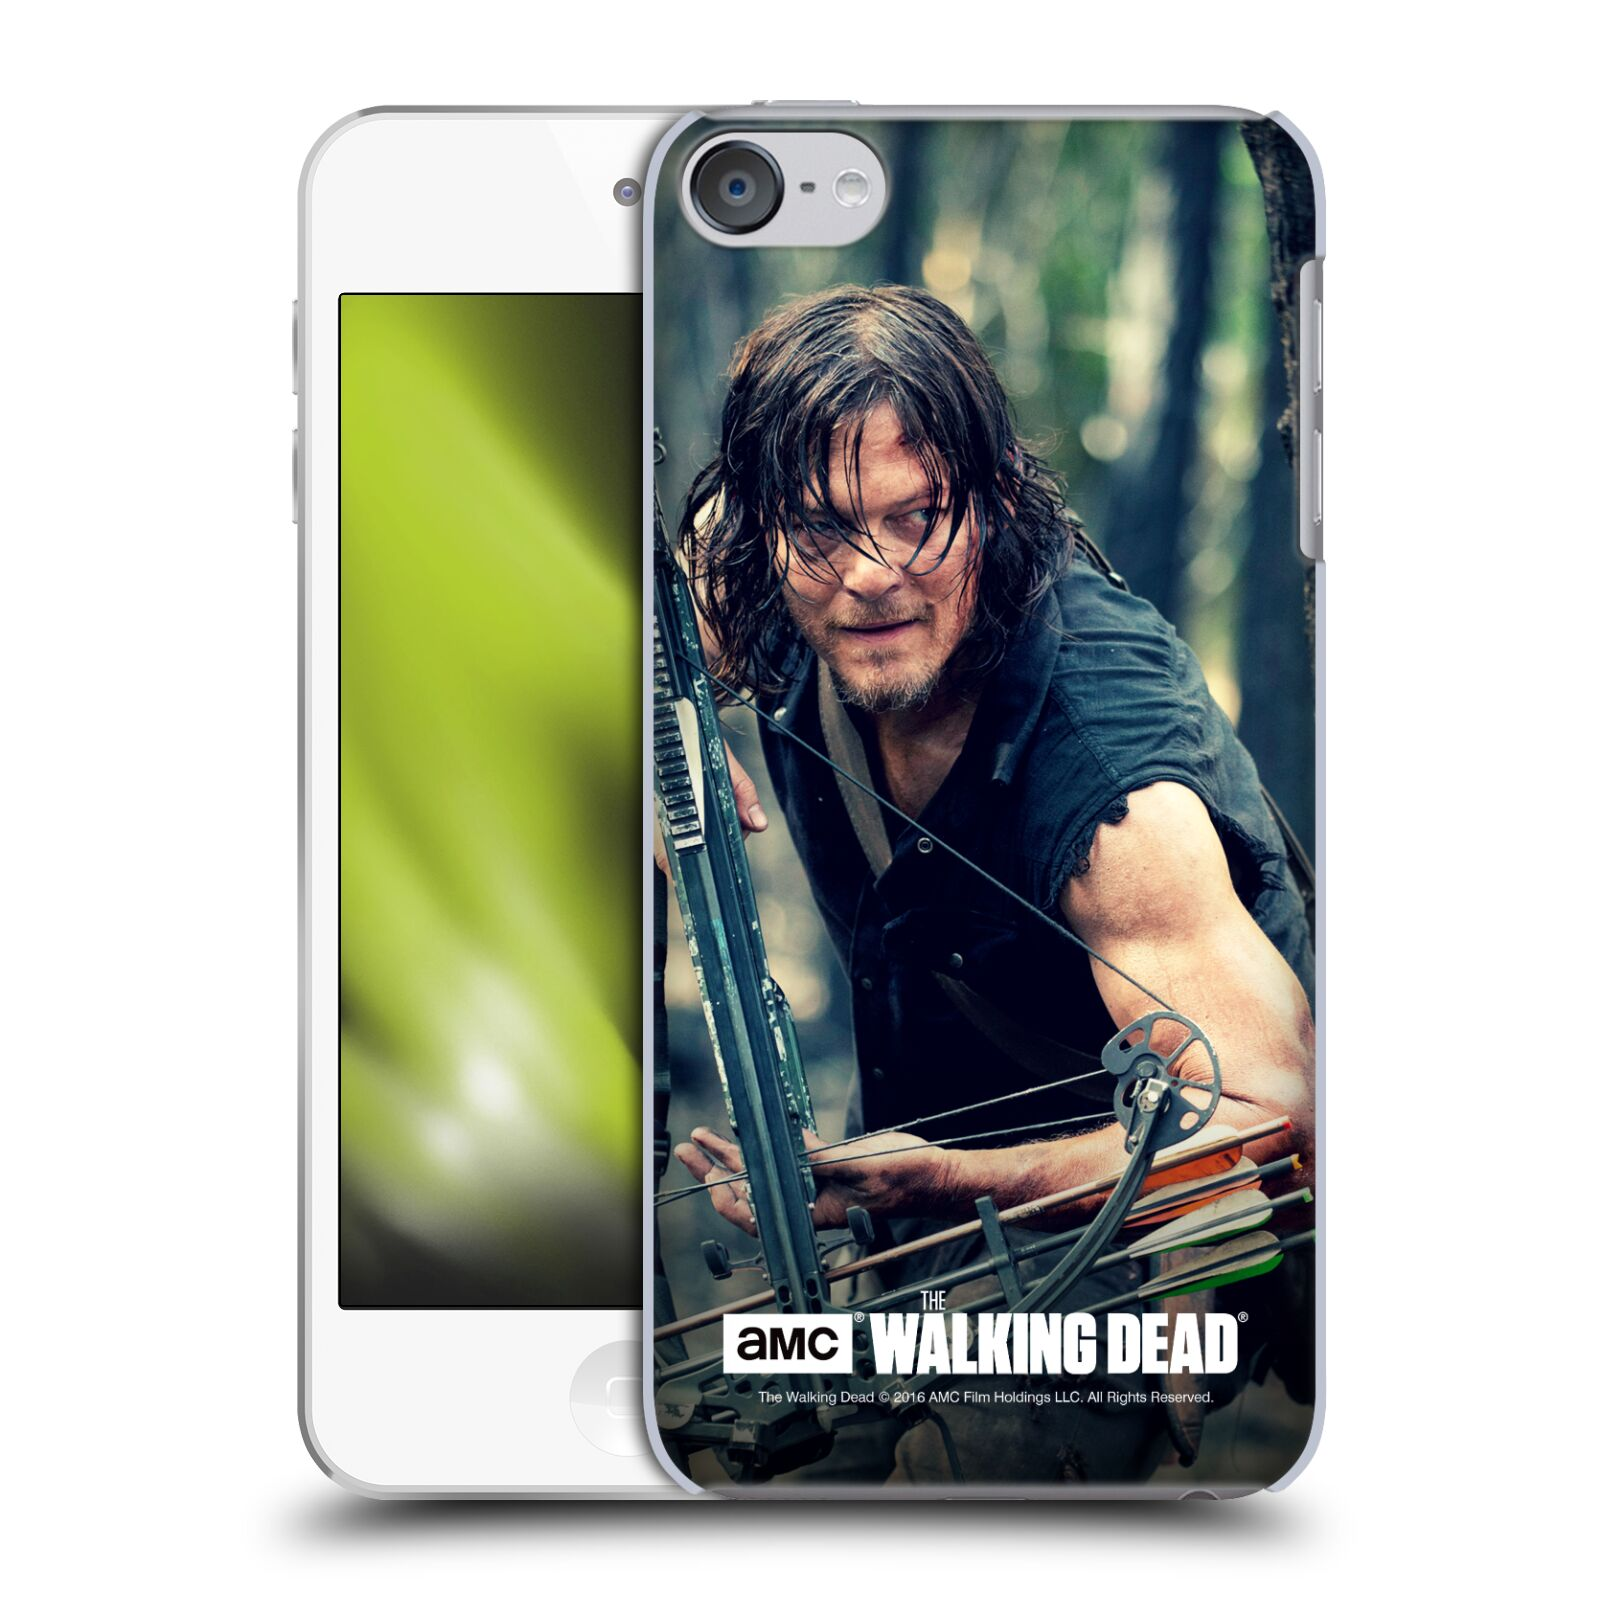 Taki Taki Lumba Mp3 Audio: OFFICIAL AMC THE WALKING DEAD DARYL DIXON BACK CASE FOR